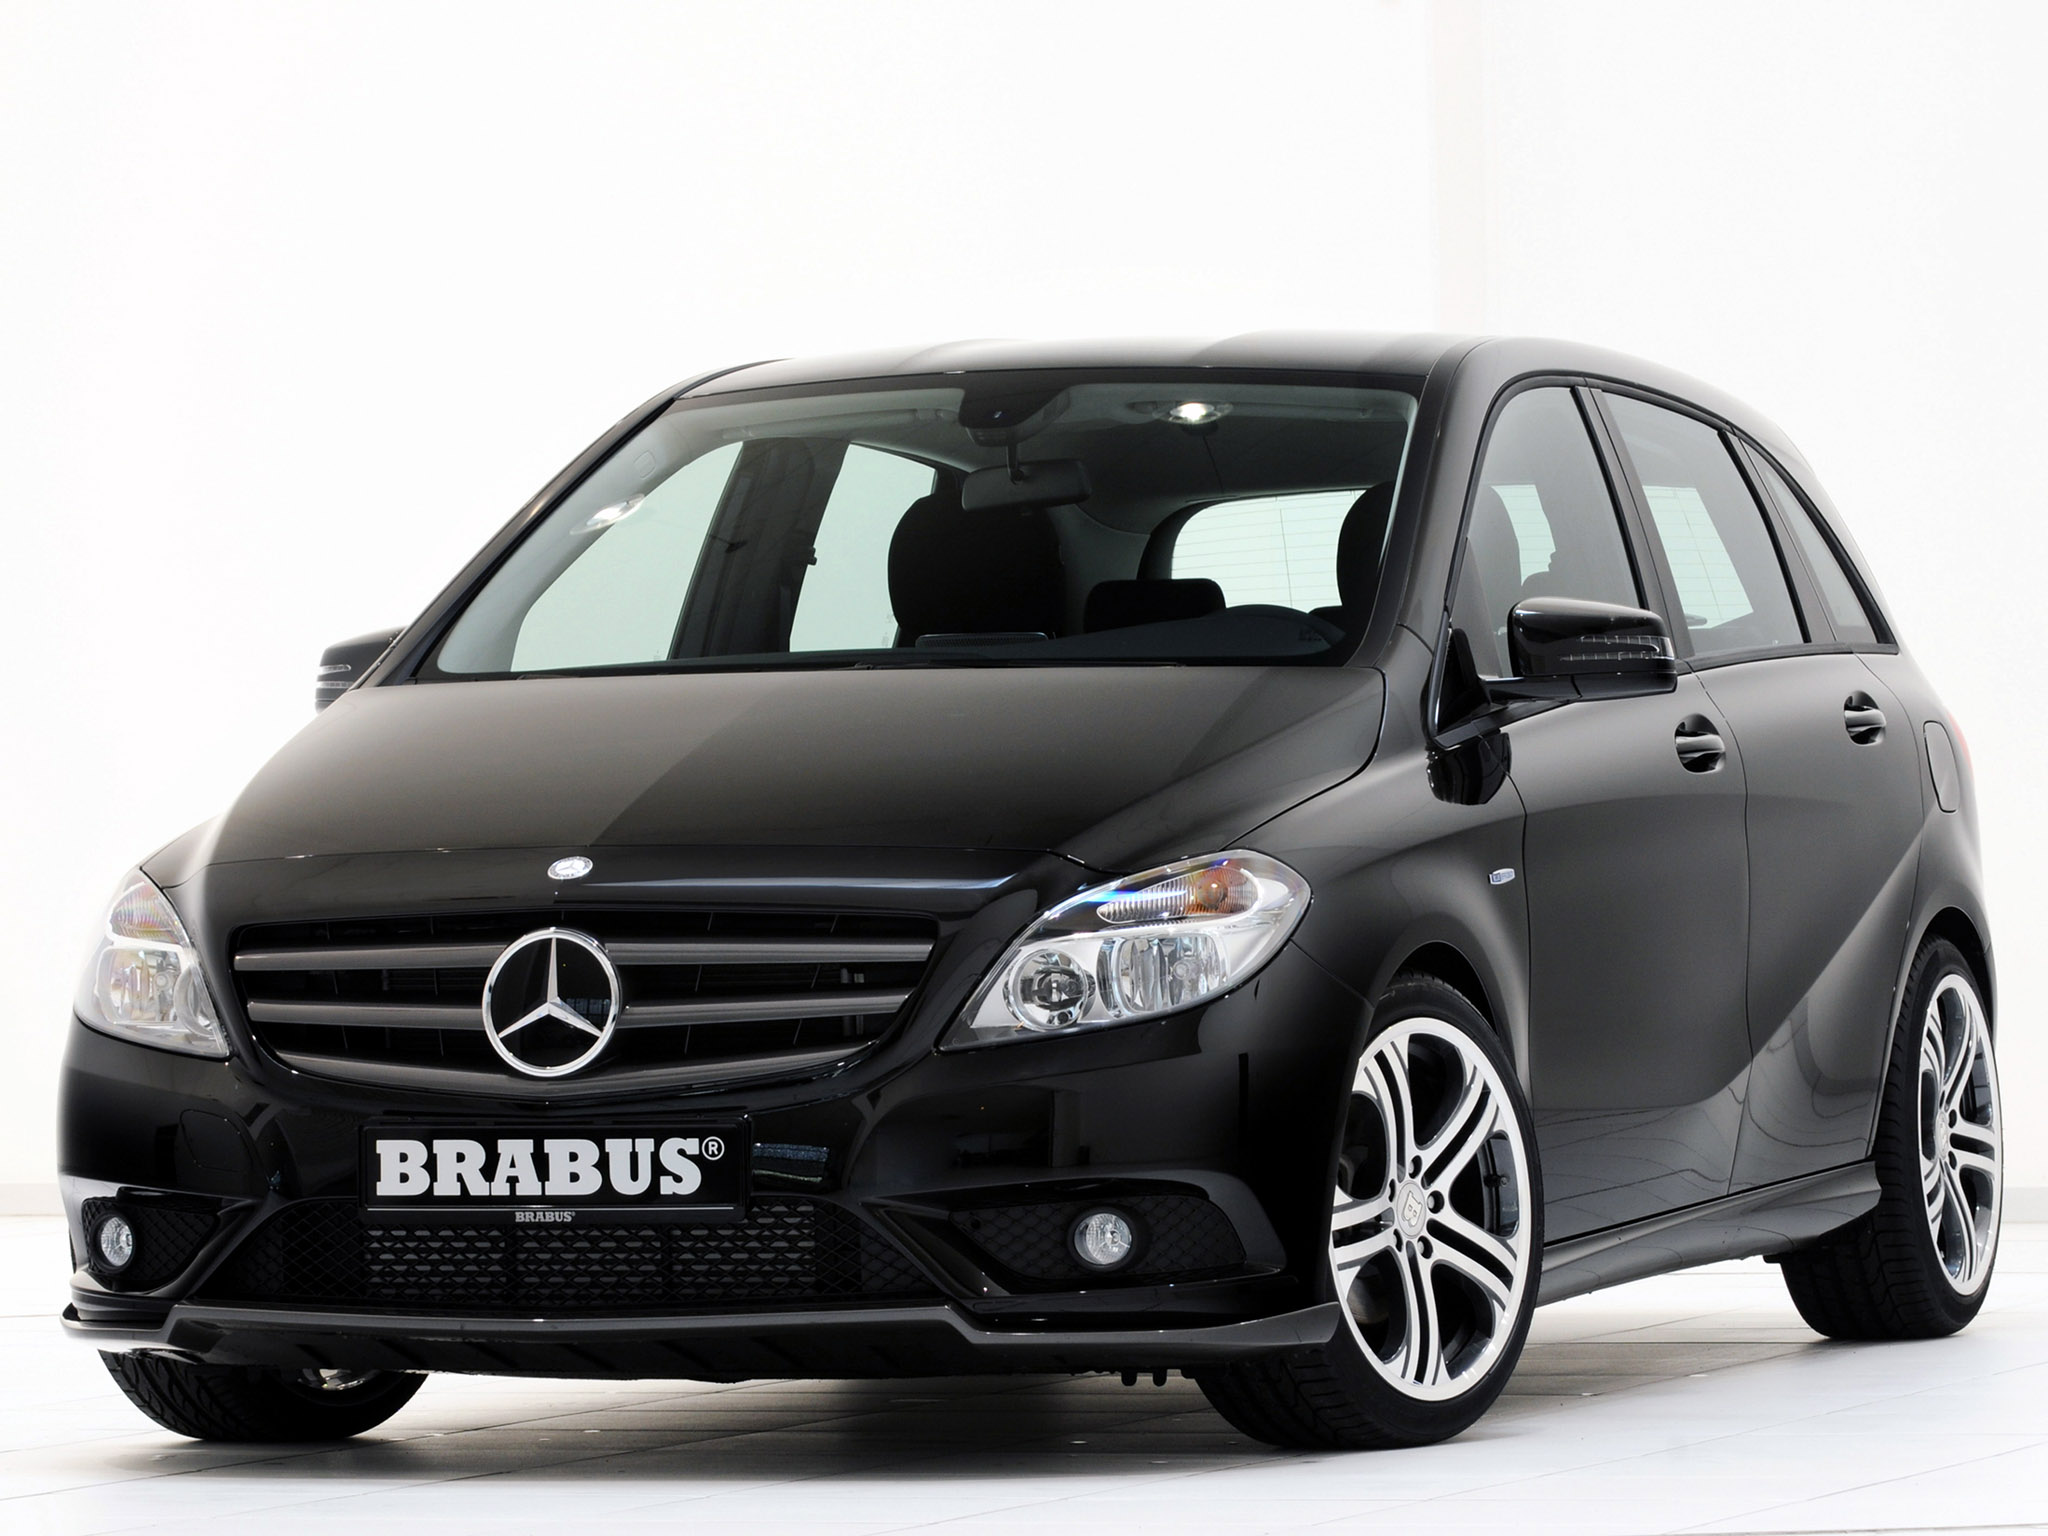 brabus mercedes b klasse w246 2012 brabus mercedes b klasse w246 2012 photo 08 car in pictures. Black Bedroom Furniture Sets. Home Design Ideas